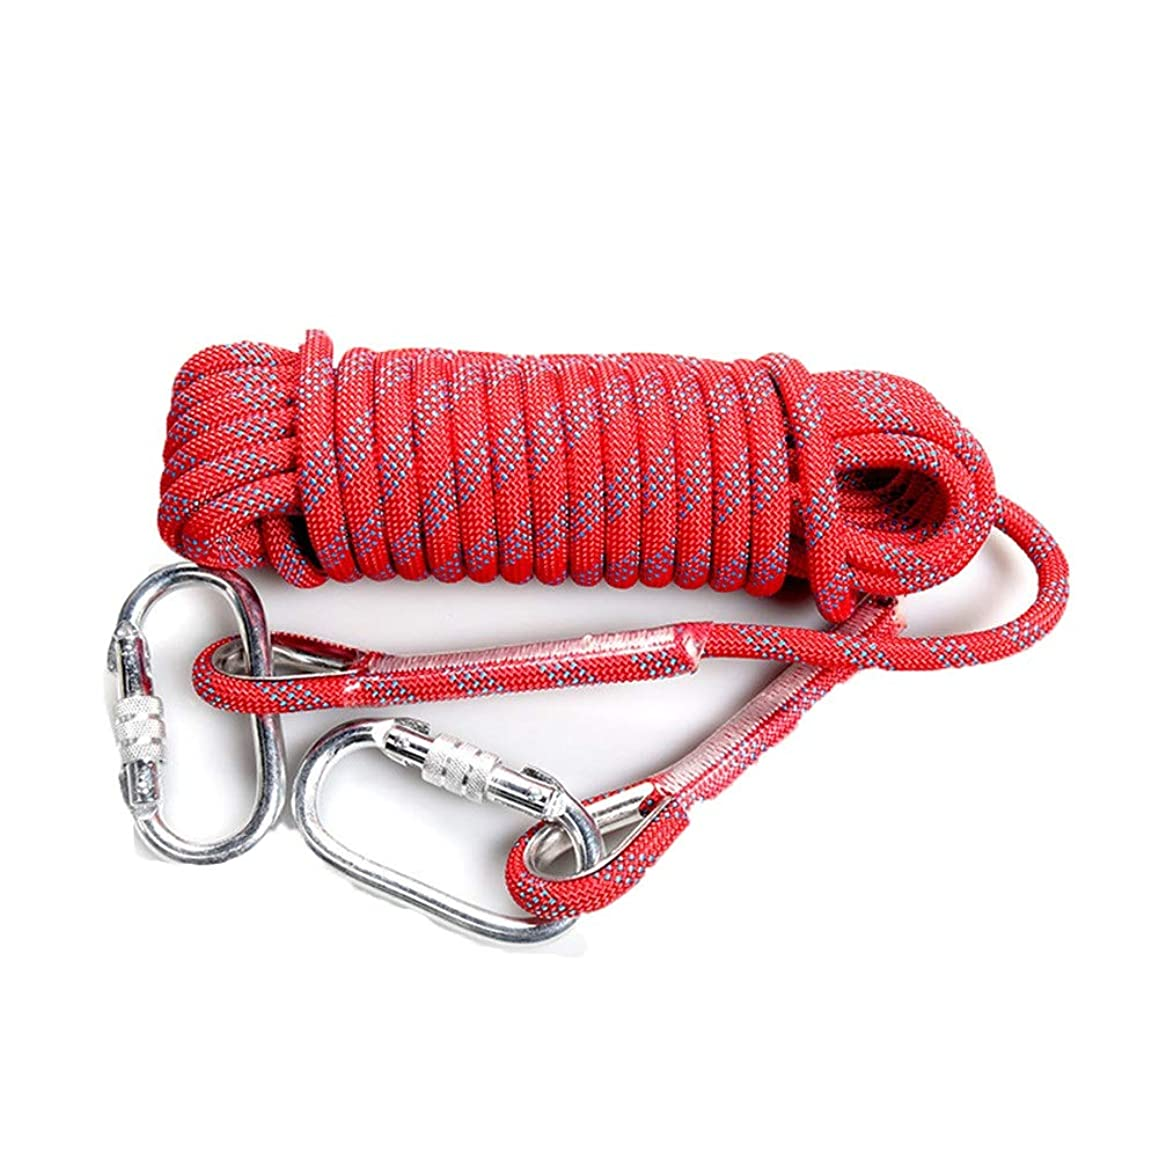 Climbing rope, Outdoor Fire Escape Rescue Parachute Static Indoor Rope, Diameter 10mm Safety Durable High Qualit - 10/15/20/25/30/35/40/50m